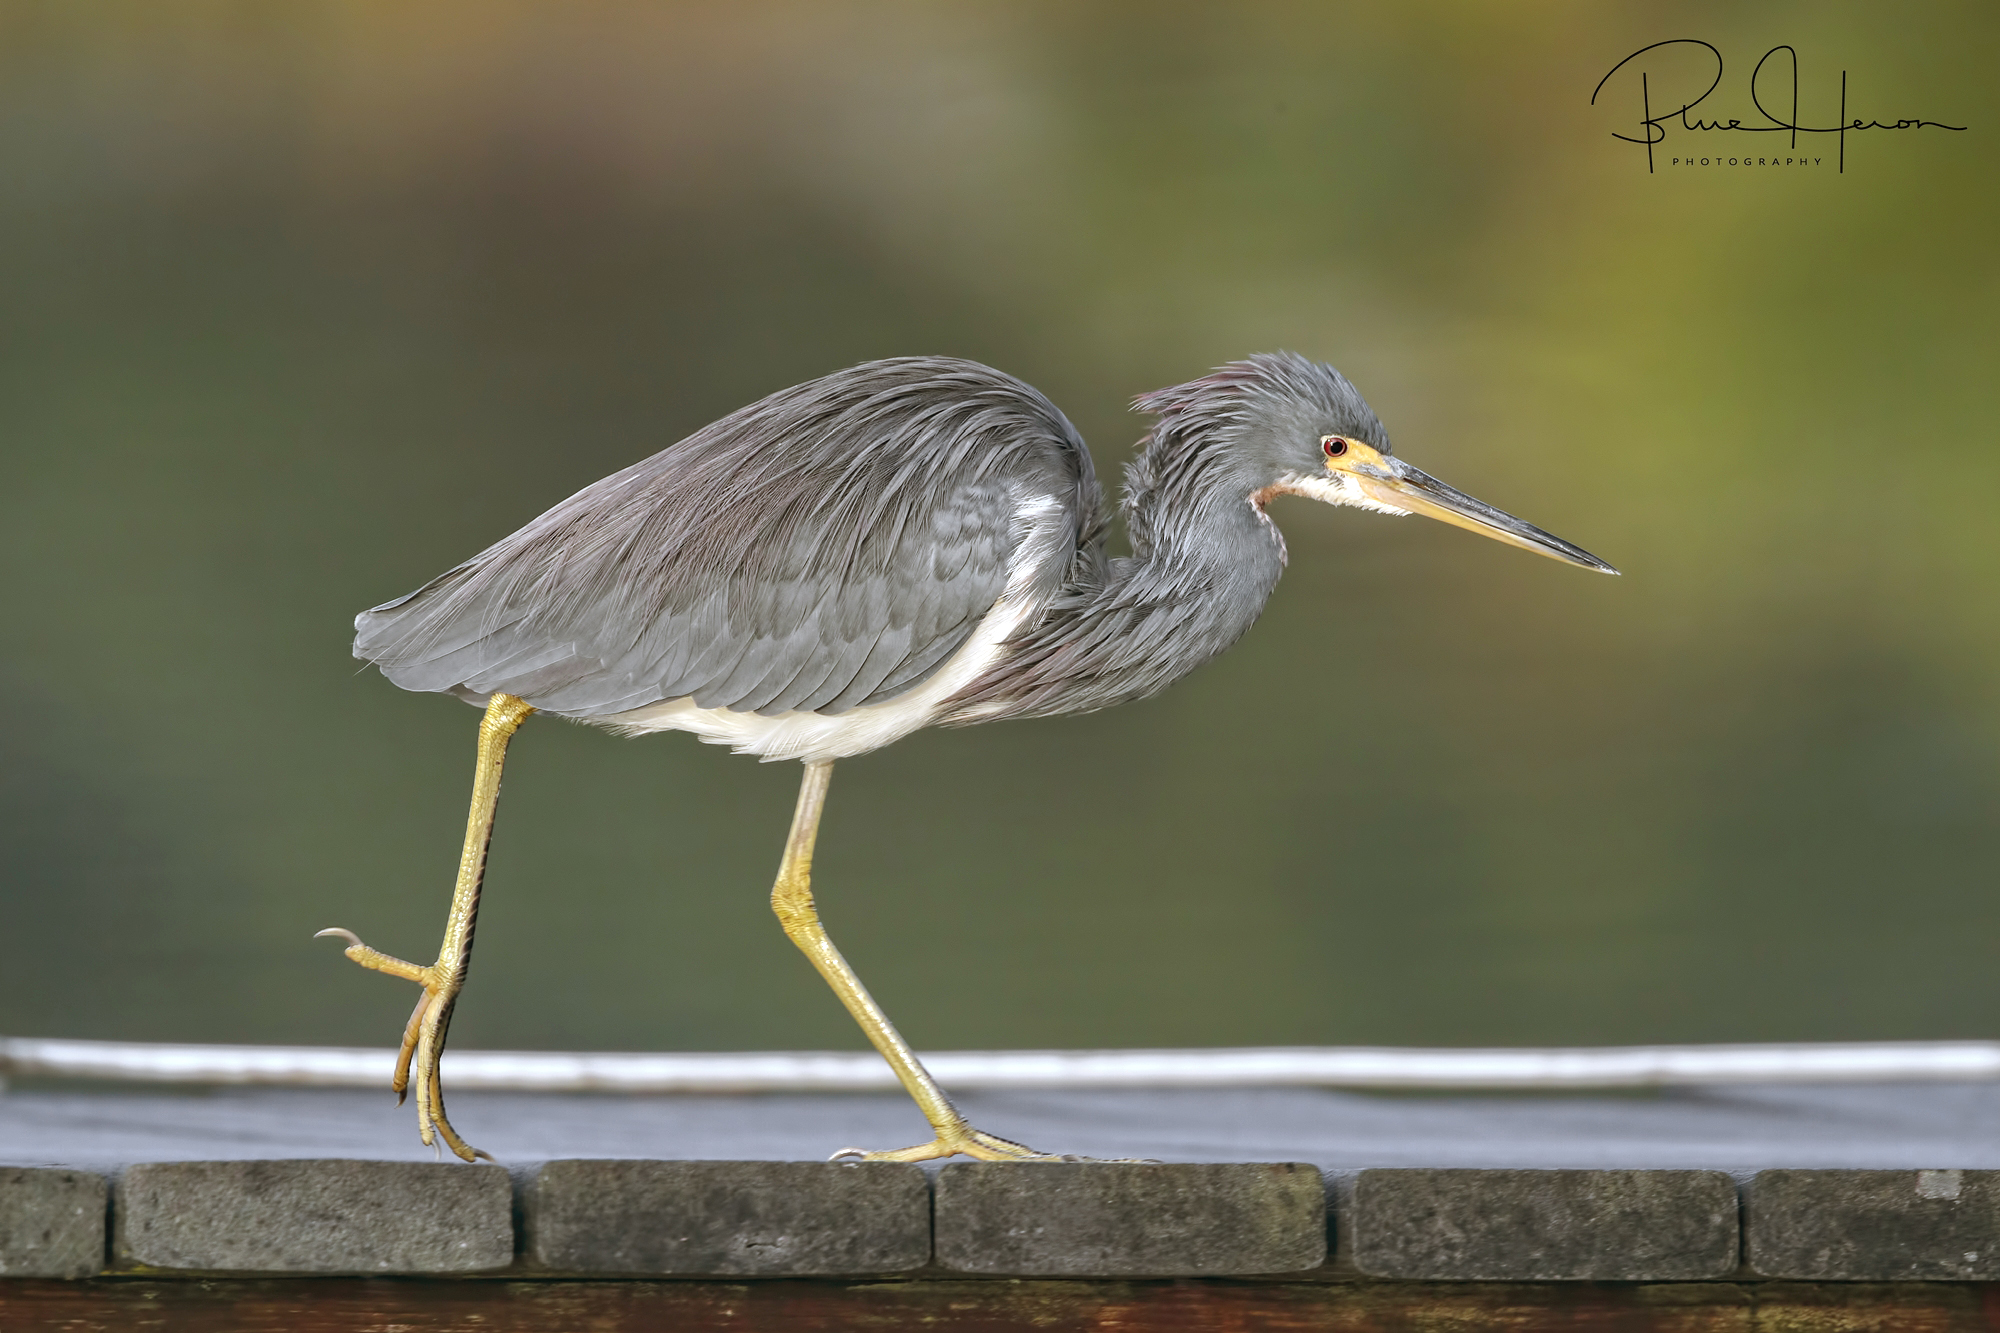 Tricolored Heron racing down the dock to get morning minnows…